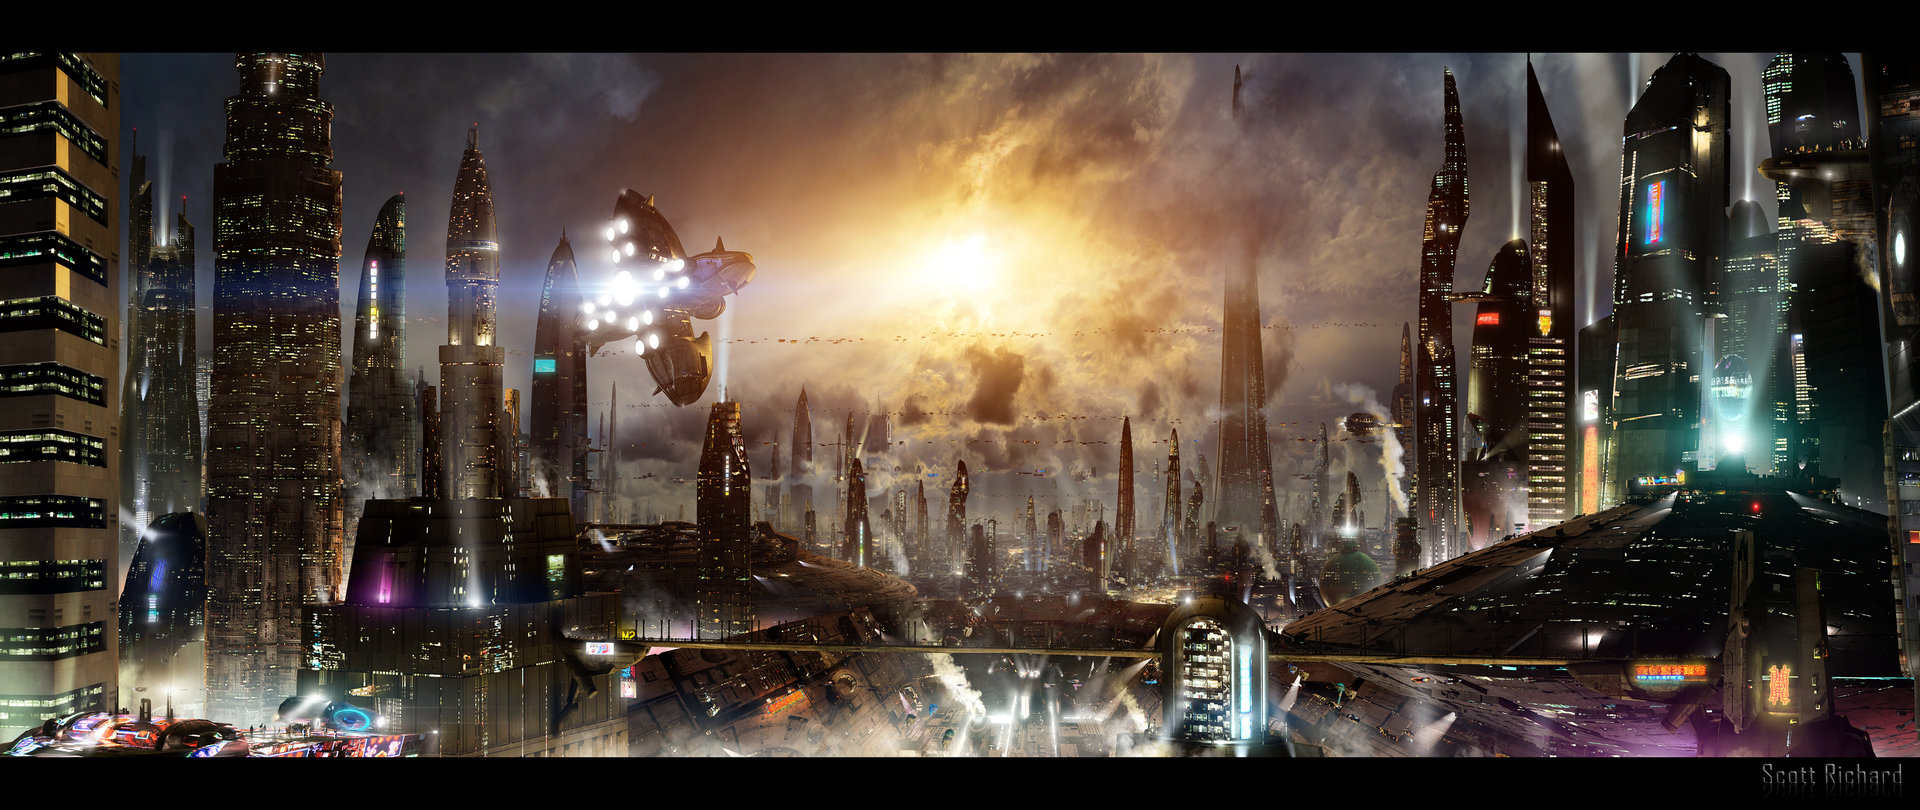 Scott richard futuristic city 3 updated background by rich35211 d5a88fo